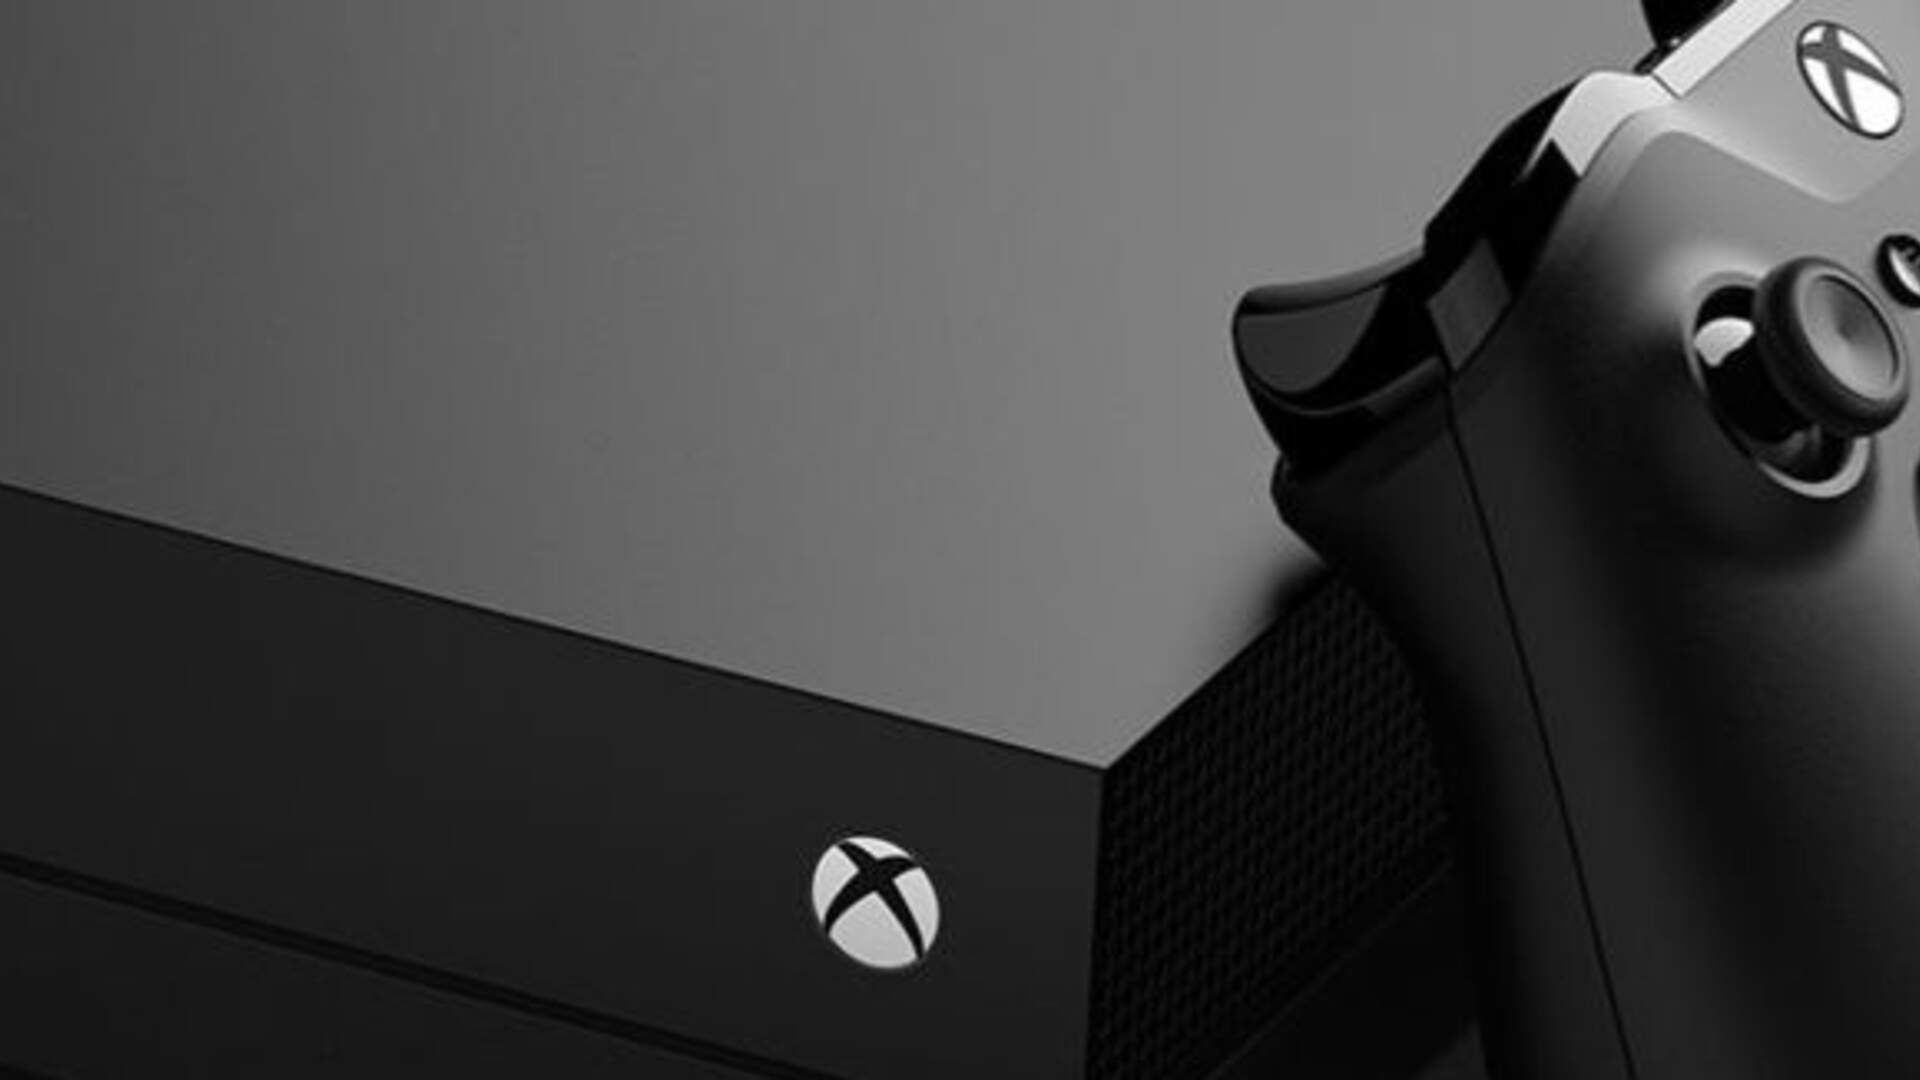 How to Connect a Controller to Xbox One - How to Charge an Xbox One Controller, Xbox One Controller Best Prices